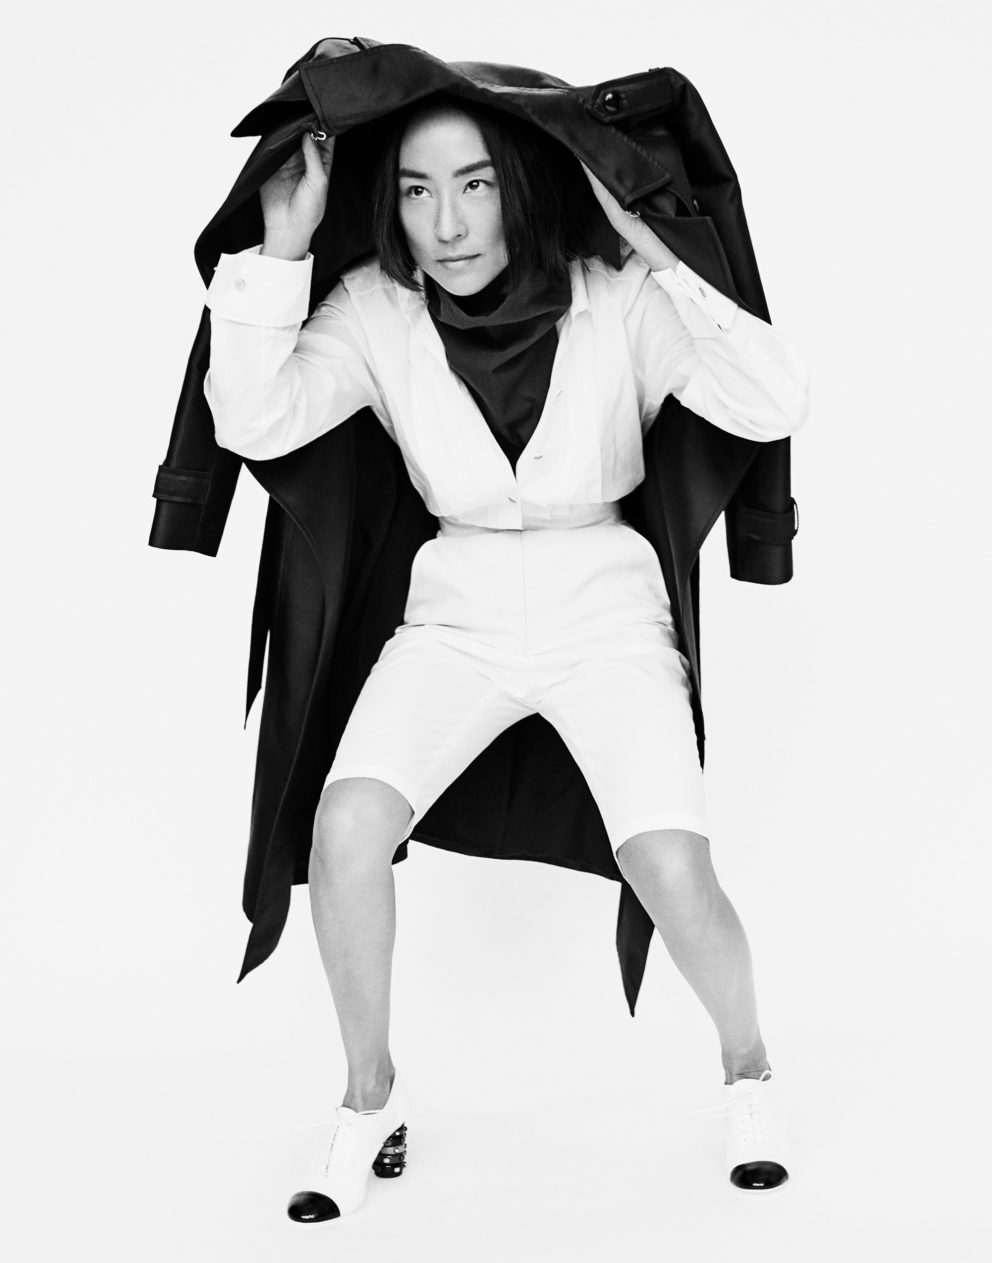 191020 0030 Sbjct Greta Lee 078 By Christian Chogstedt Web